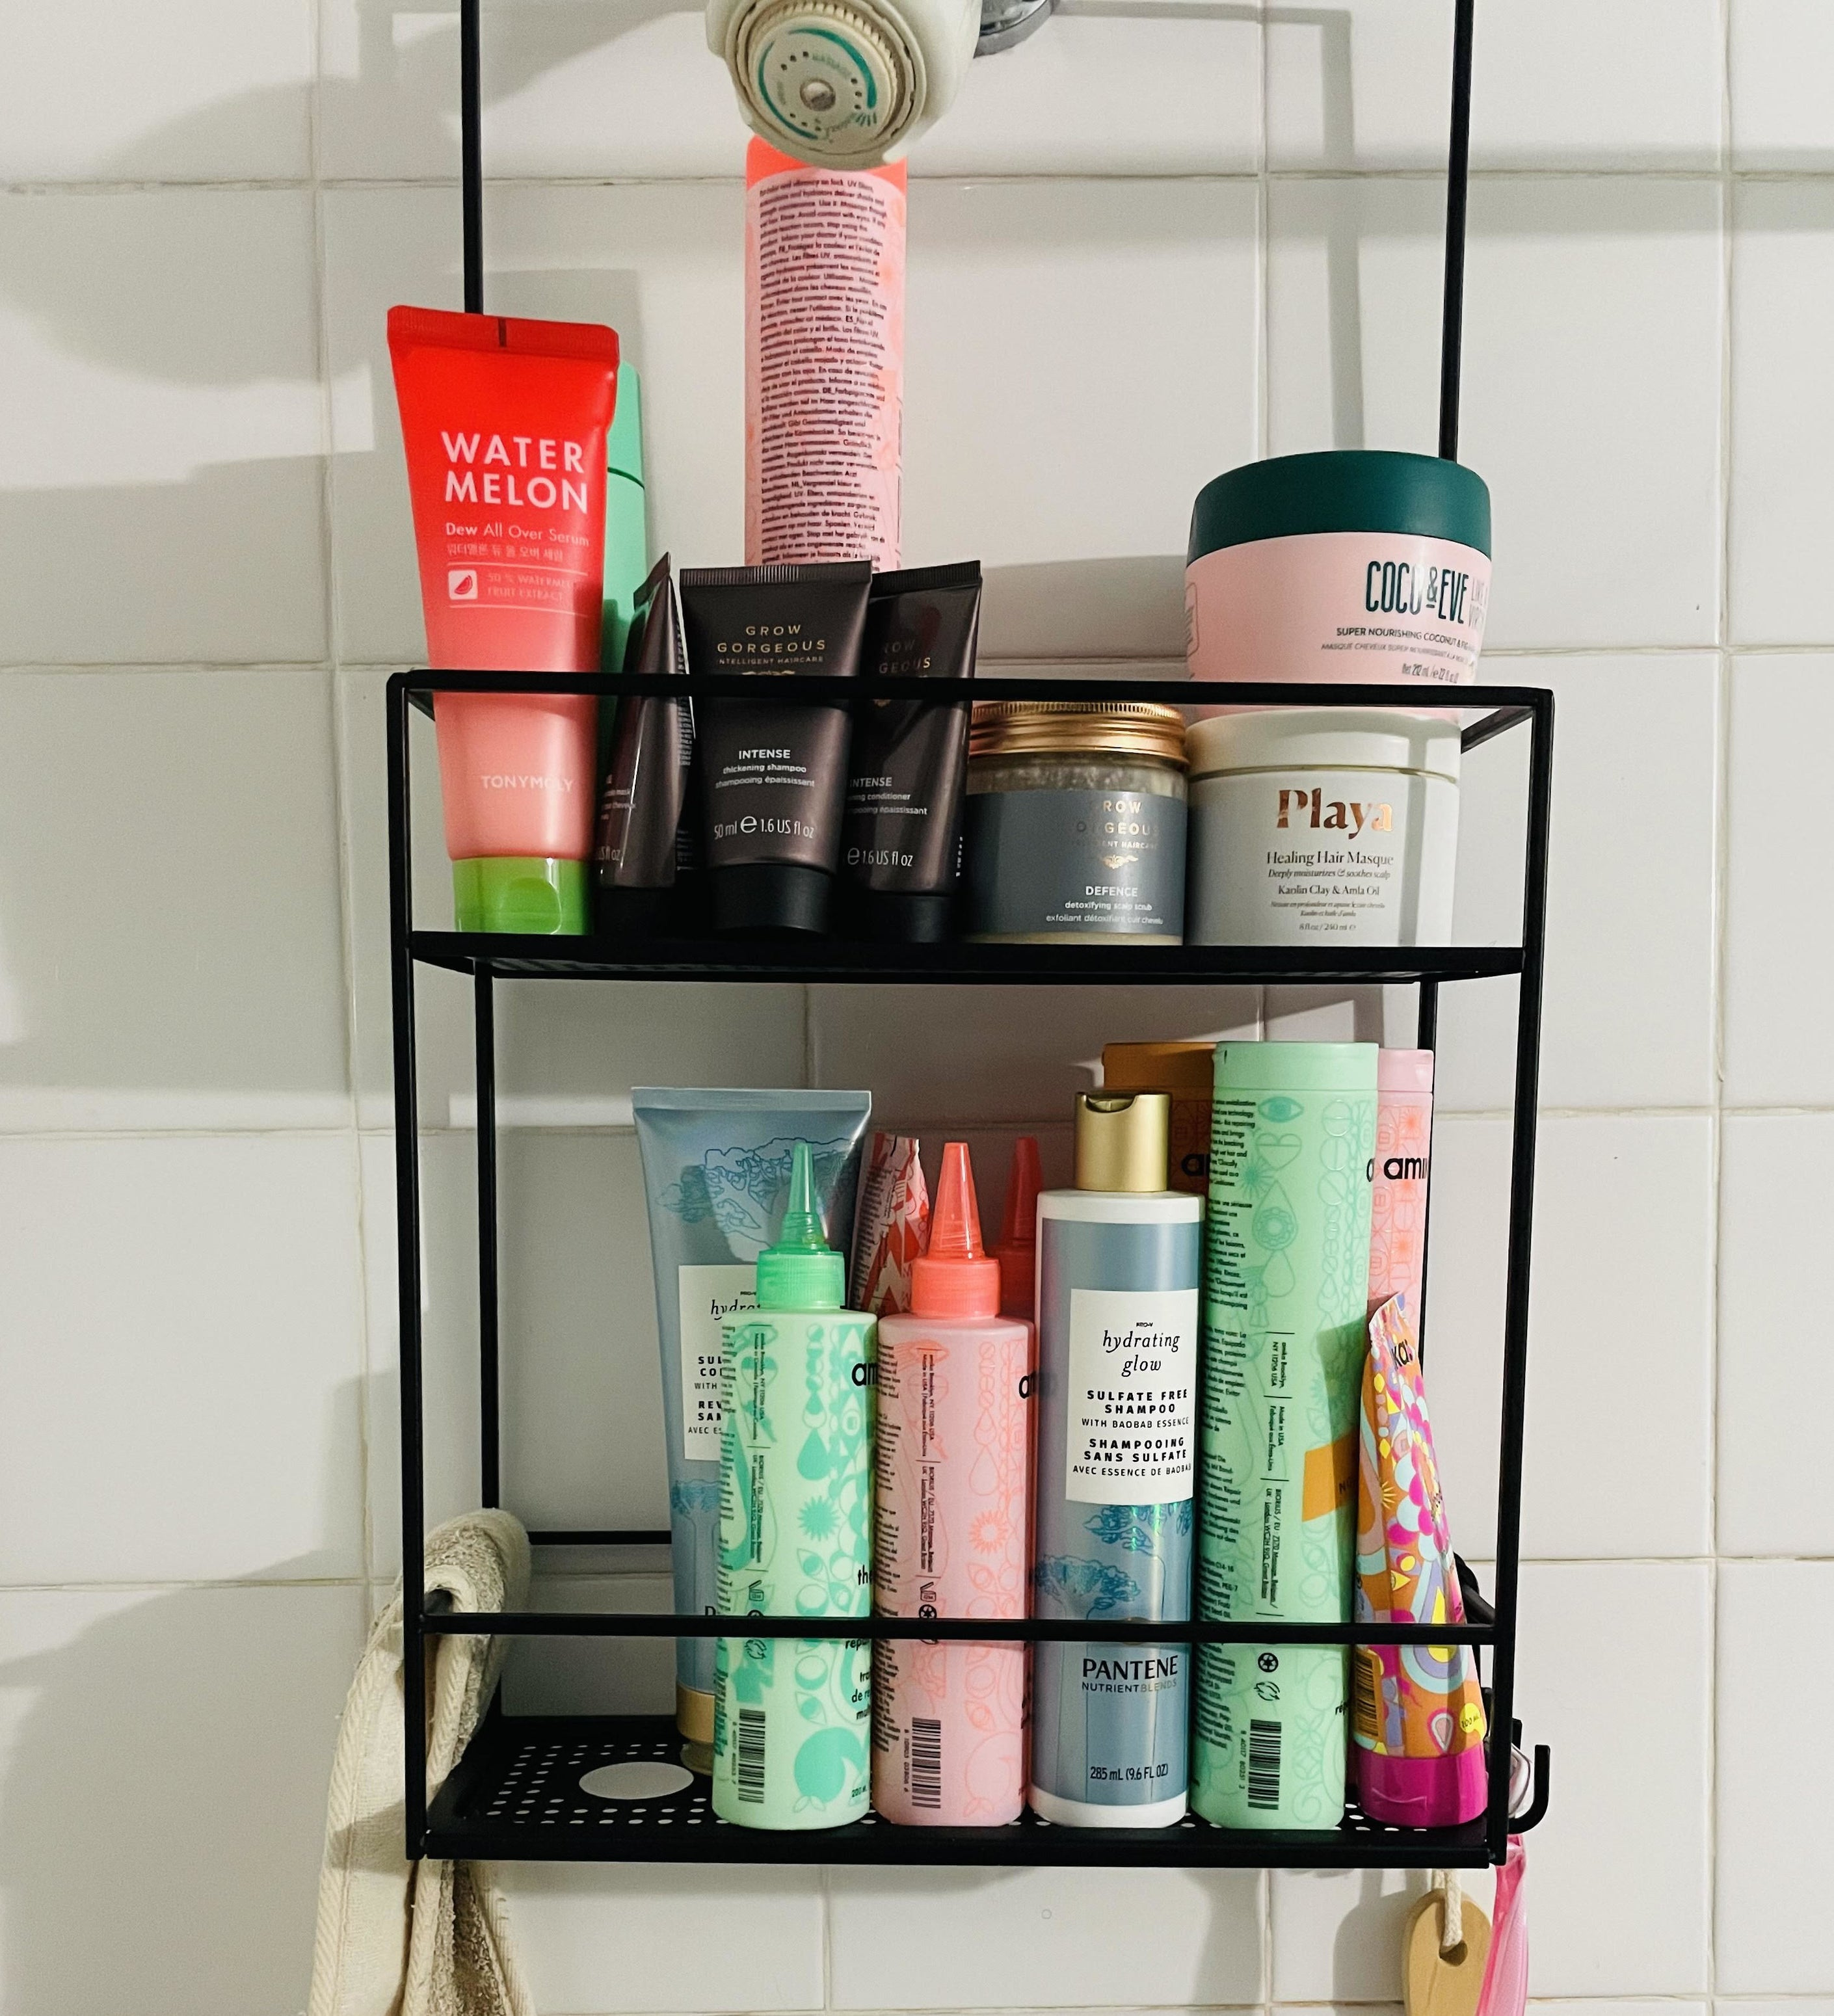 The shower caddy in a shower filled with products